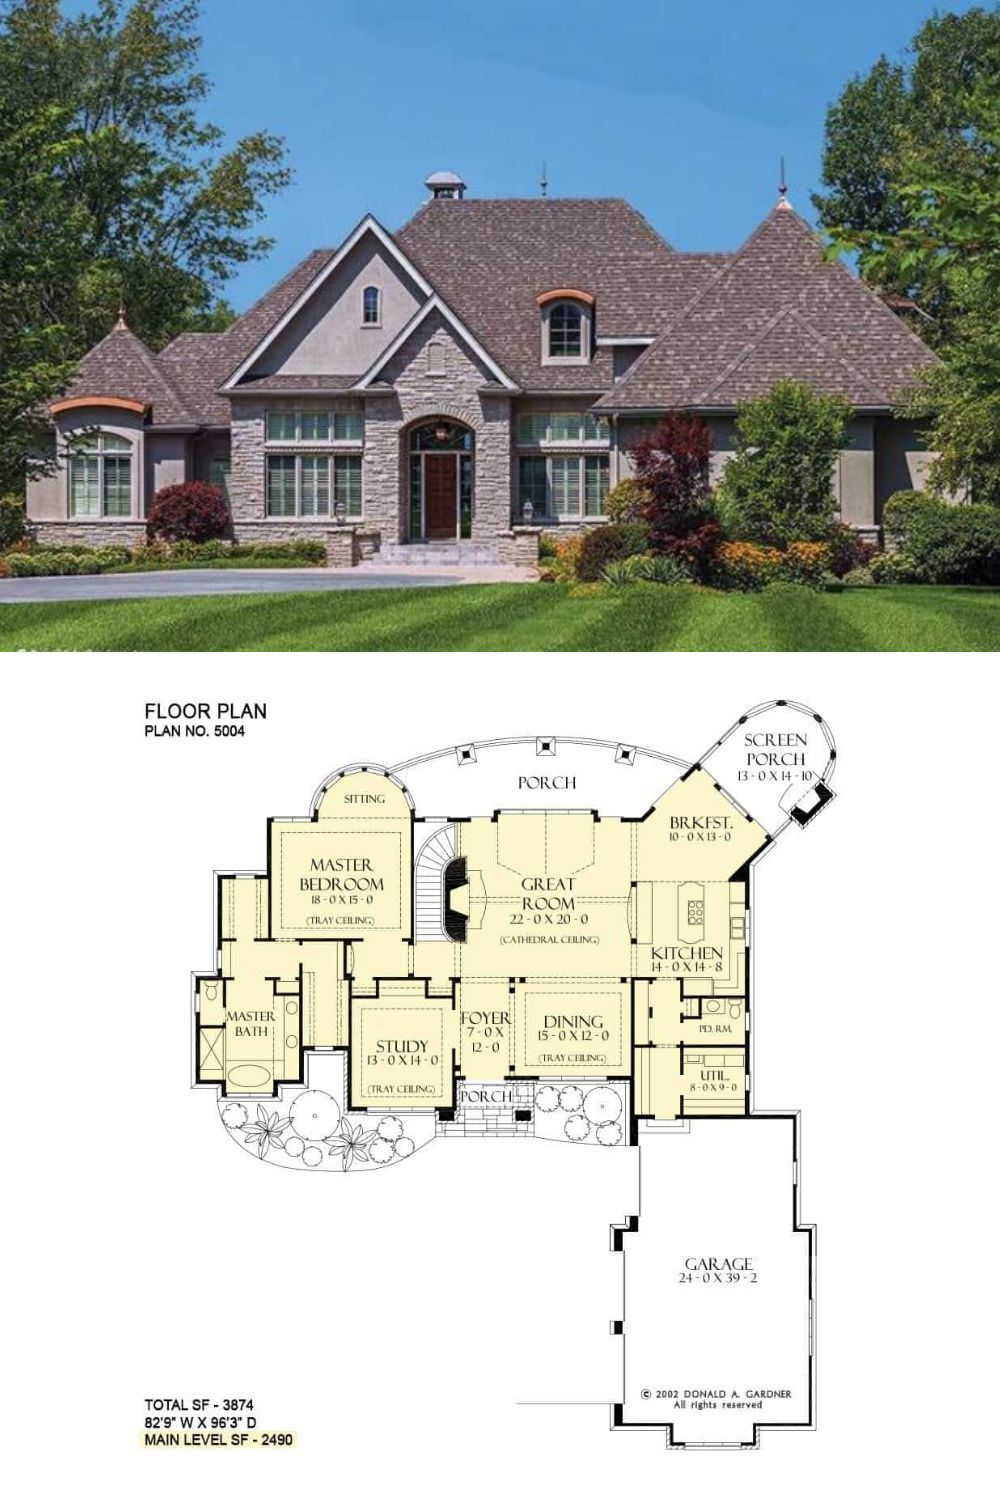 The Cedar Court s 3 Bedroom 2 Story European House Plan for a Sloping Lot Floor Plan